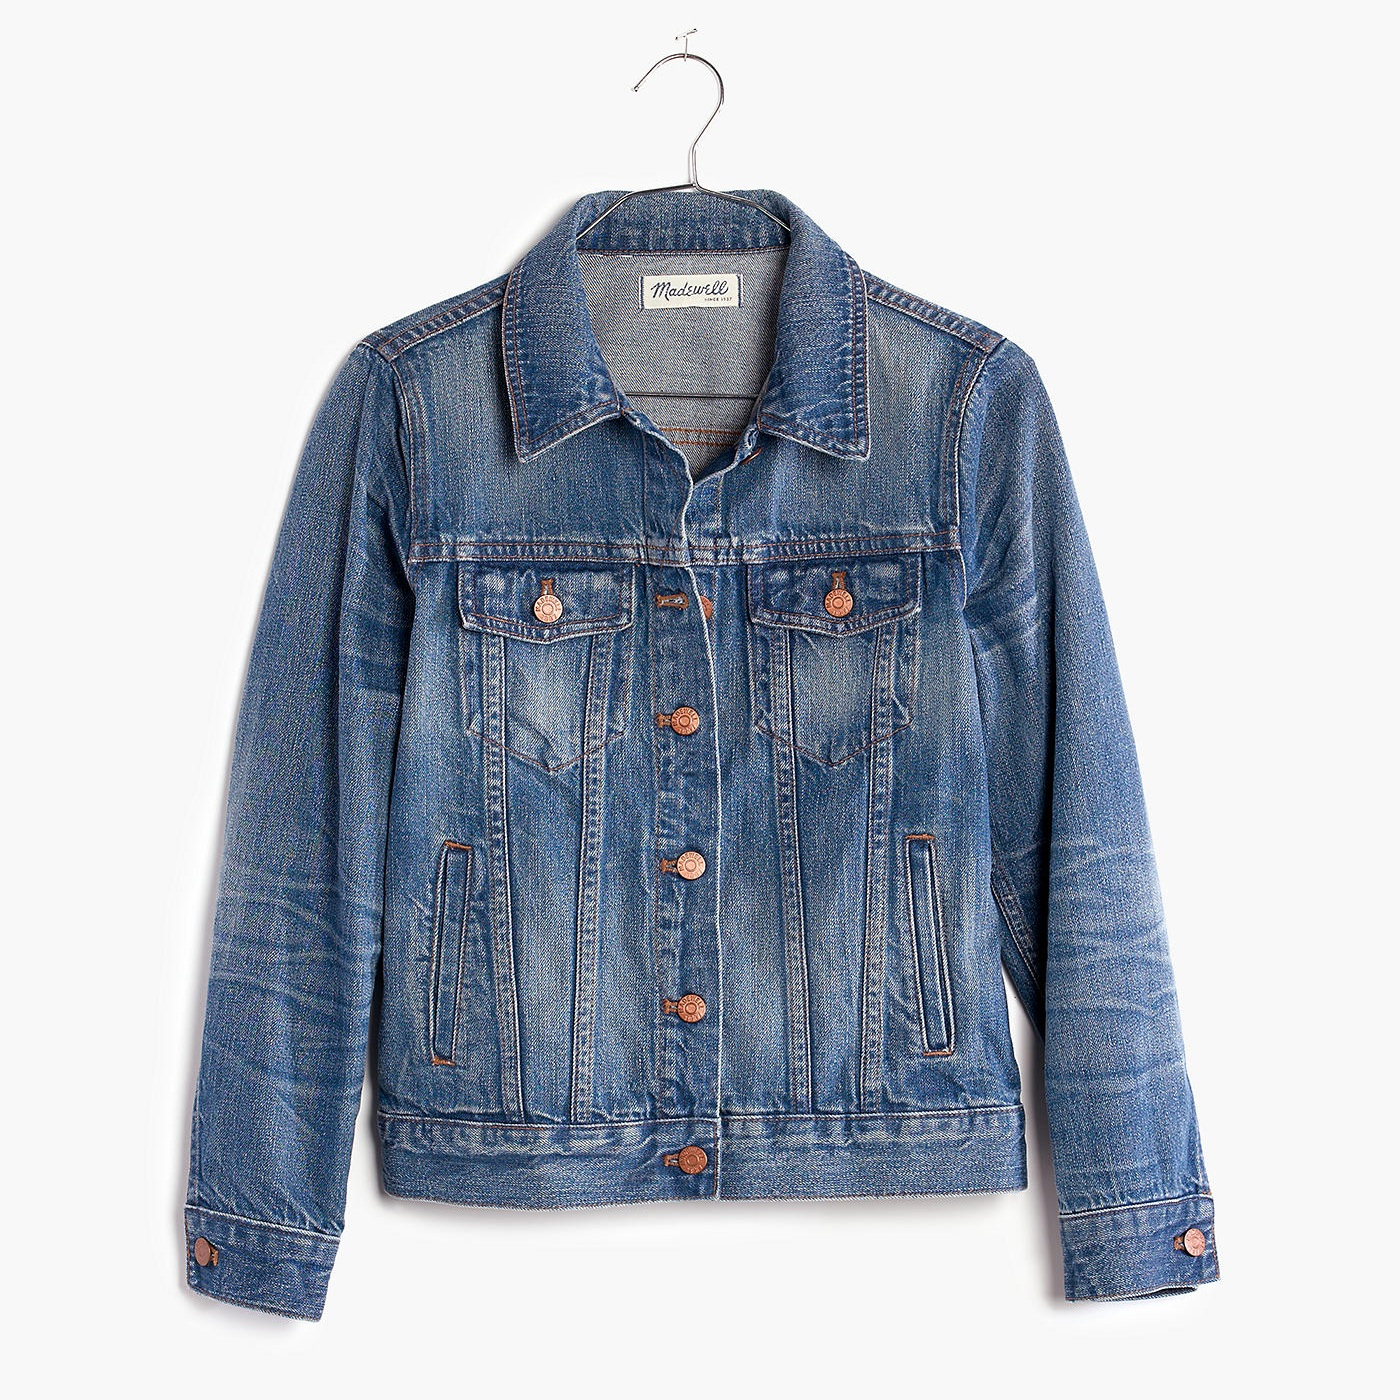 denim jacket - Denim jackets are perfect to go over any outfit, especially dresses when you don't want to show your arms.